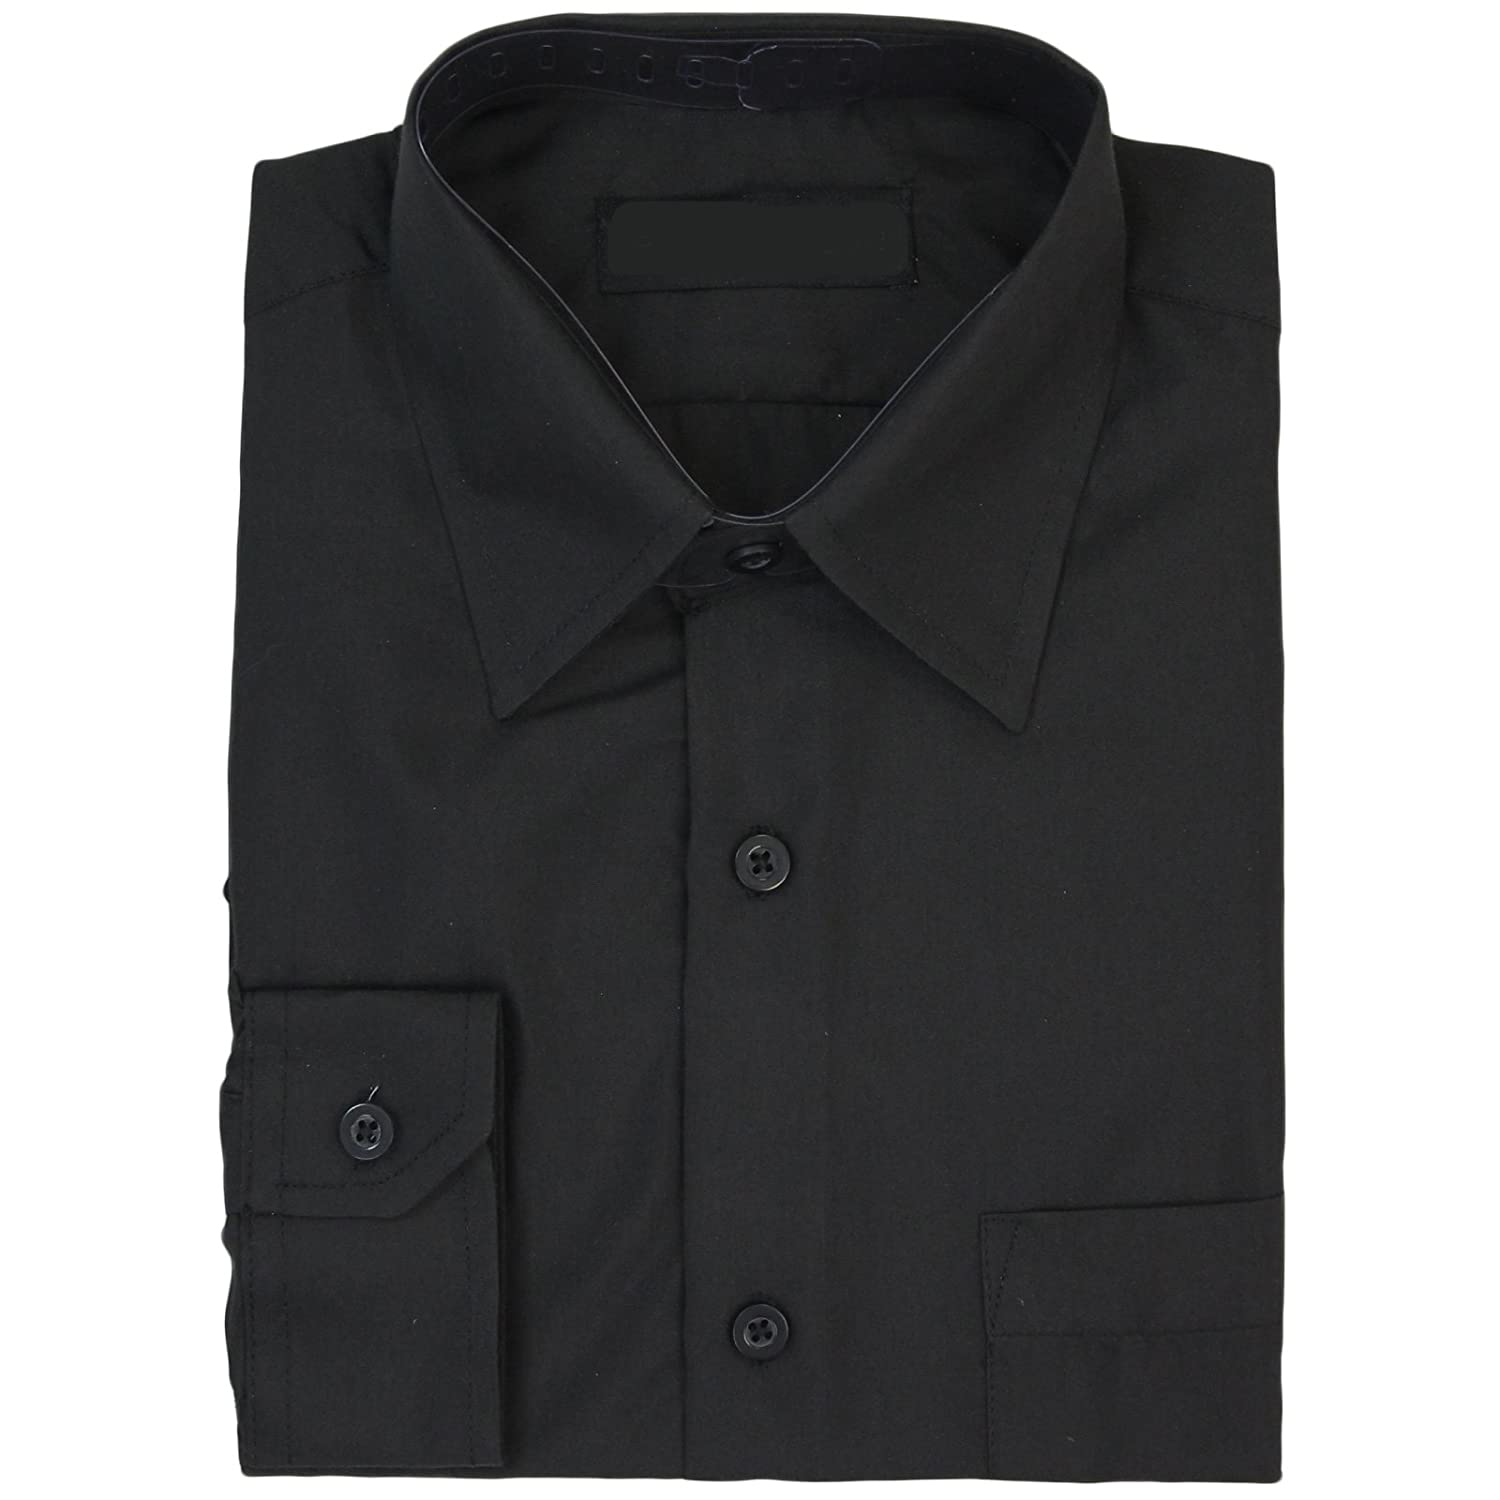 Boys black Prom formal Boys Shirt 6months - 15 Years: Amazon.co.uk ...